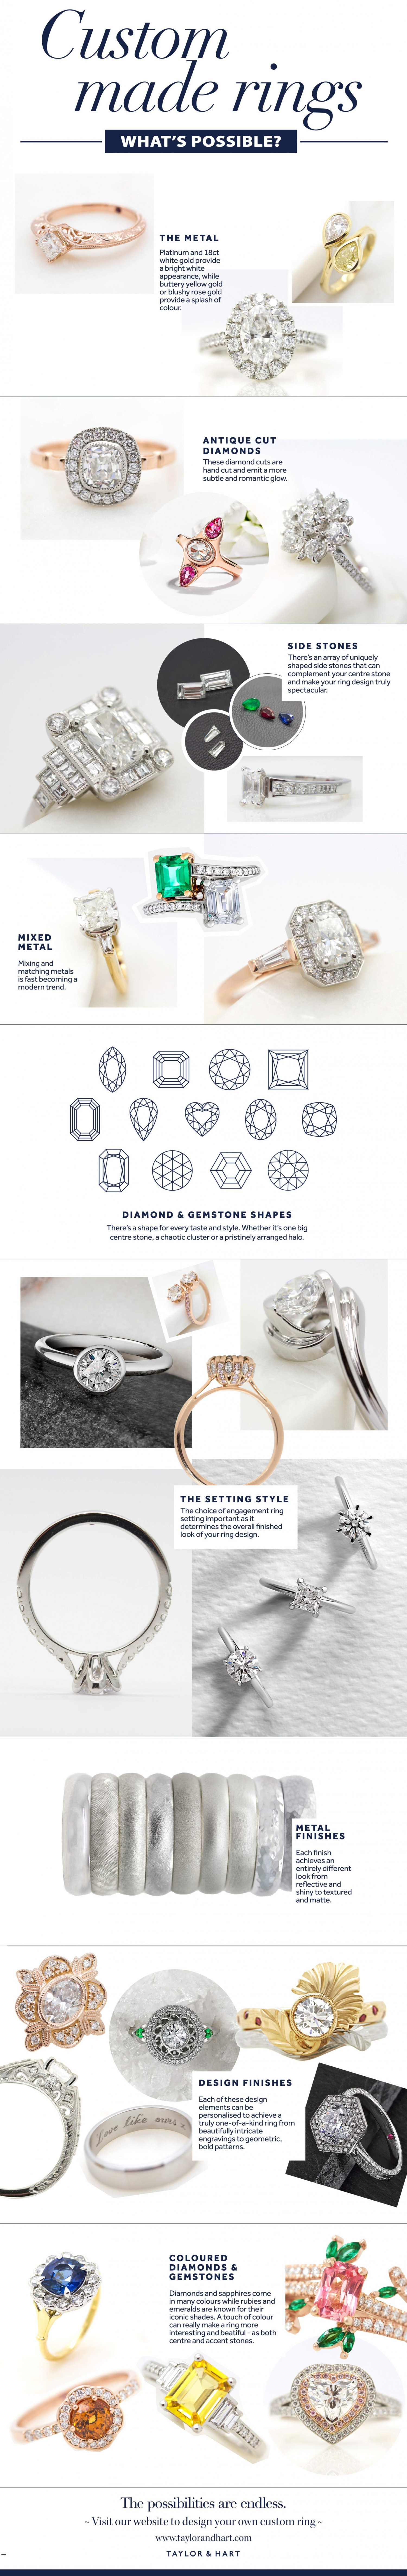 Custom Made Rings. What's Possible? Infographic